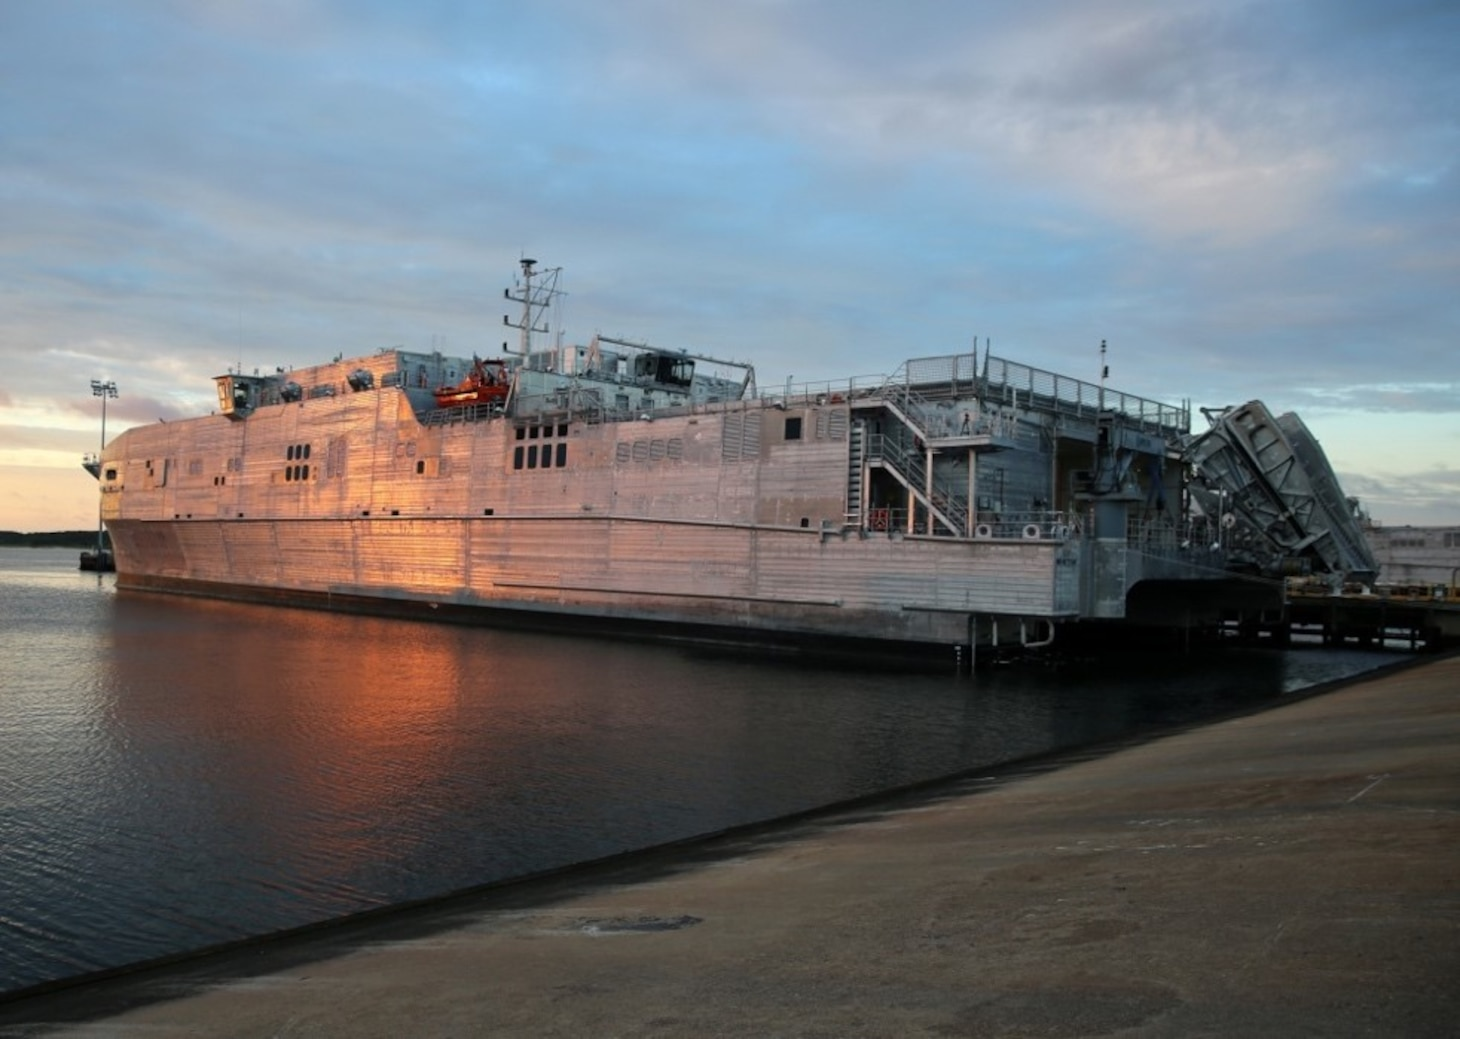 170701-N-OH262-002 VIRGINIA BEACH, Va. (July 1, 2017) -- A view of Military Sealift Command's expeditionary fast transport ship USNS Yuma (T-EPF 8) pier-side onboard Joint Expeditionary Base Little Creek-Fort Story, July 1. EPF class ships are designed to transport 600 short tons of military cargo 1,200 nautical miles at an average speed of 35 knots. The ship is capable of operating in austere ports and waterways, interfacing with roll-on/roll-off discharge facilities, and on/off-loading a combat-loaded Abrams main battle tank. (U.S. Navy photograph by Bill Mesta/released)